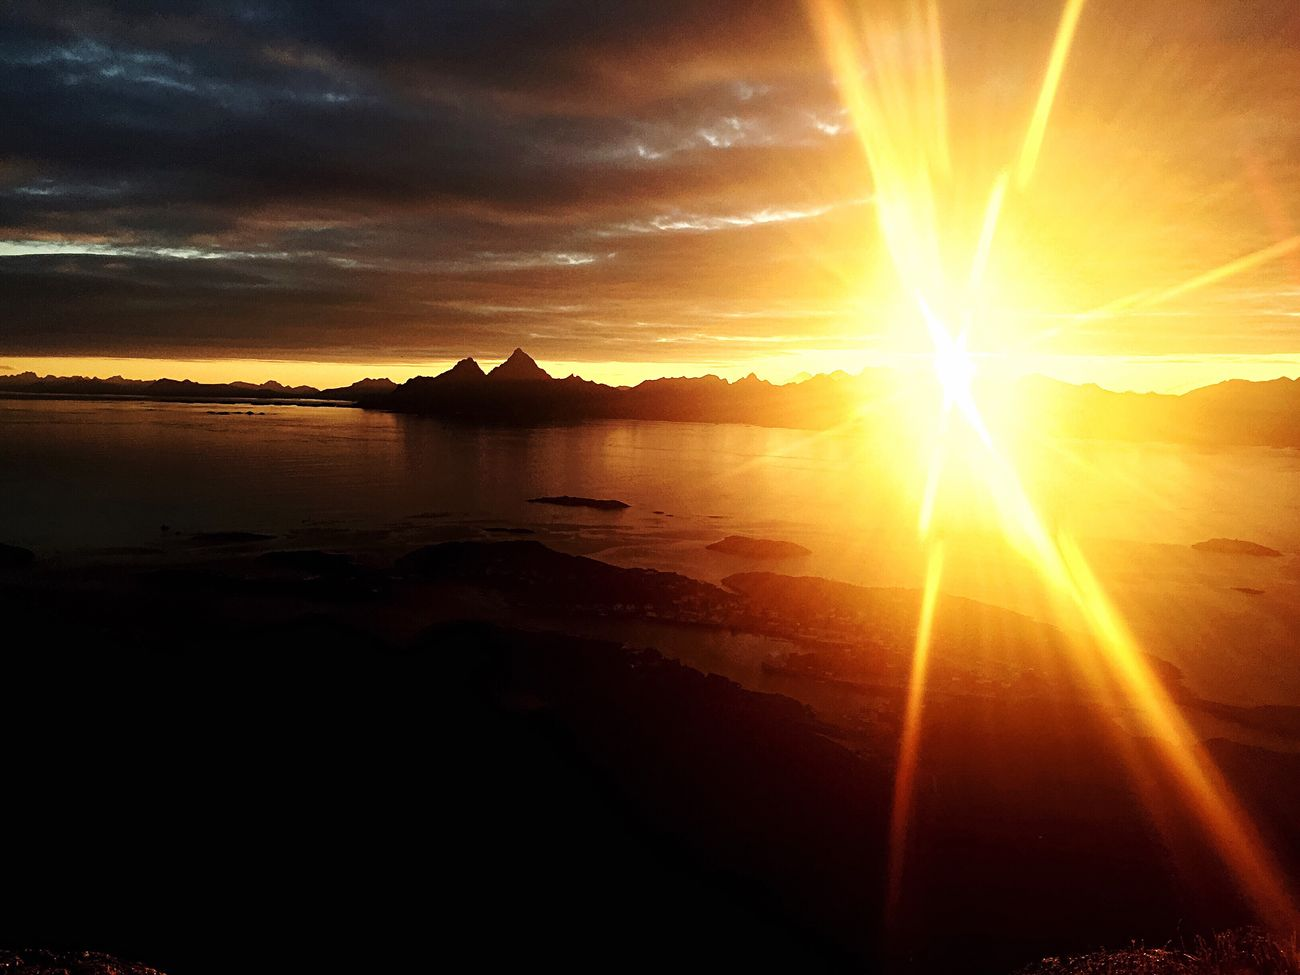 Sunset Sunset_collection Skrova Skrovafjellet Lofoten Lofoten Islands Lofoten Norway Beauty In Nature Nature Water Outdoors Dramatic Sky Landscape Shadows & Lights Contrast Norgeibilder Norway Nature Photography Nature On Your Doorstep Nature_perfection